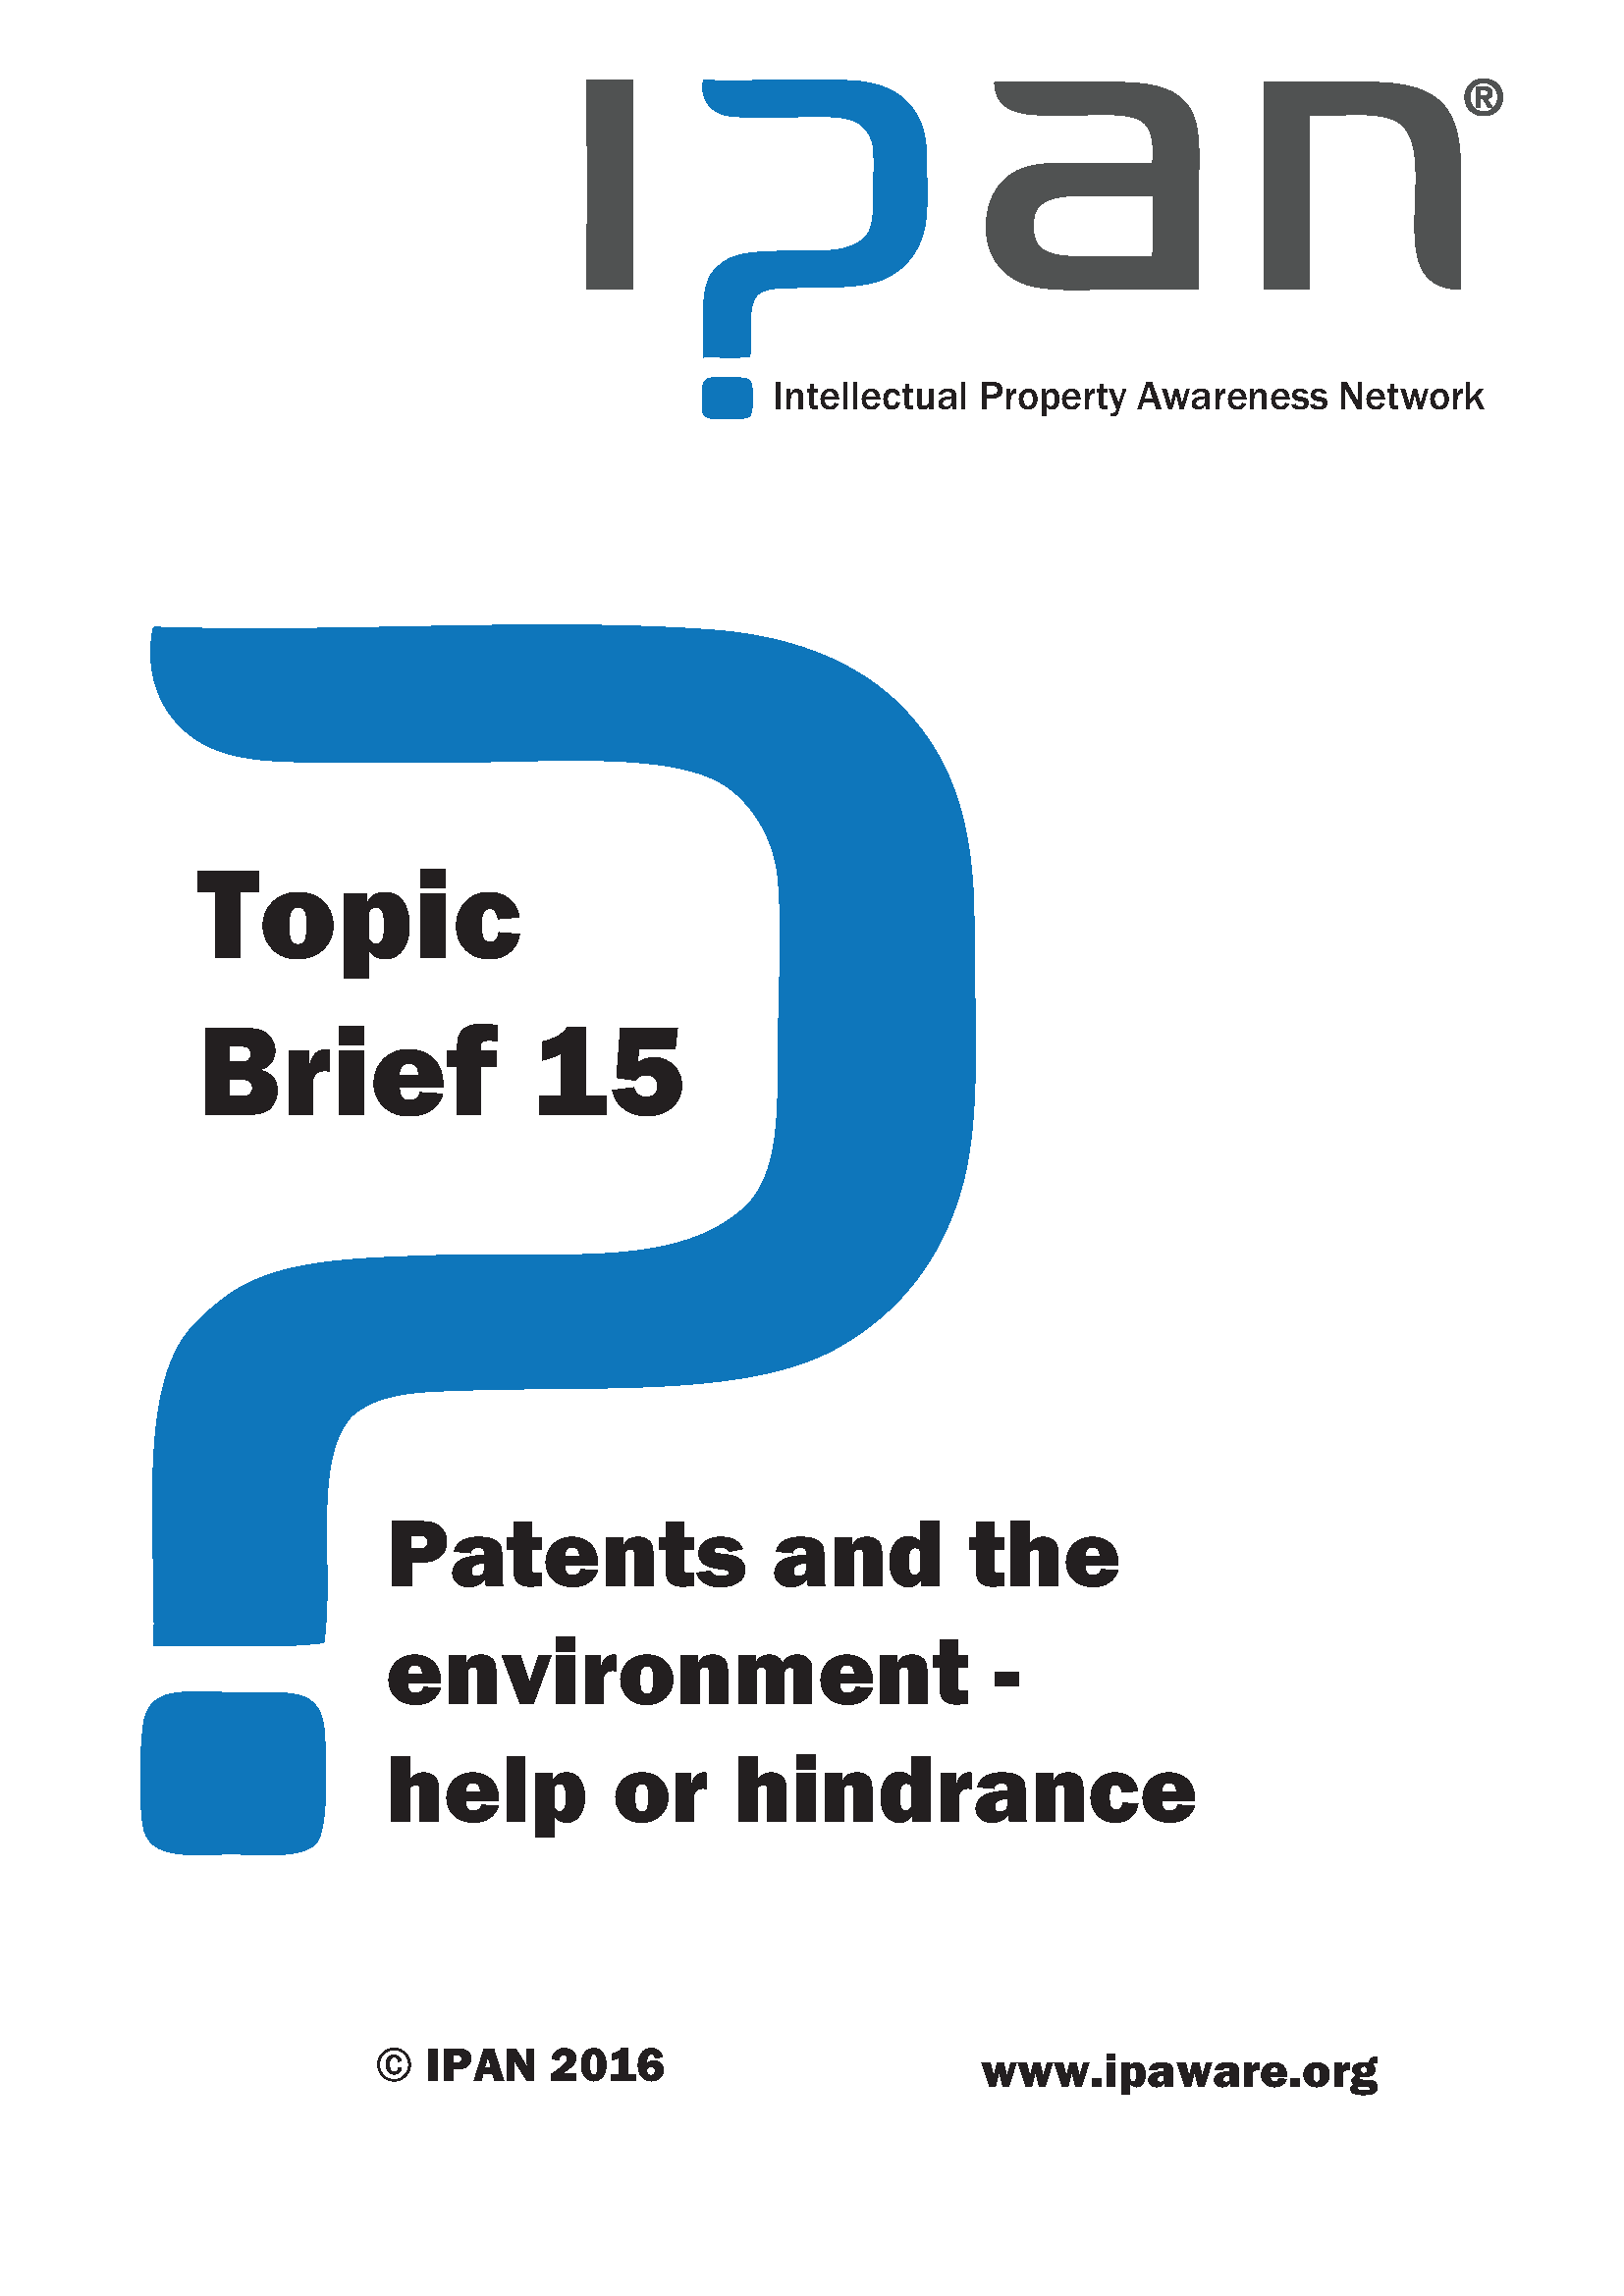 Patents and environment